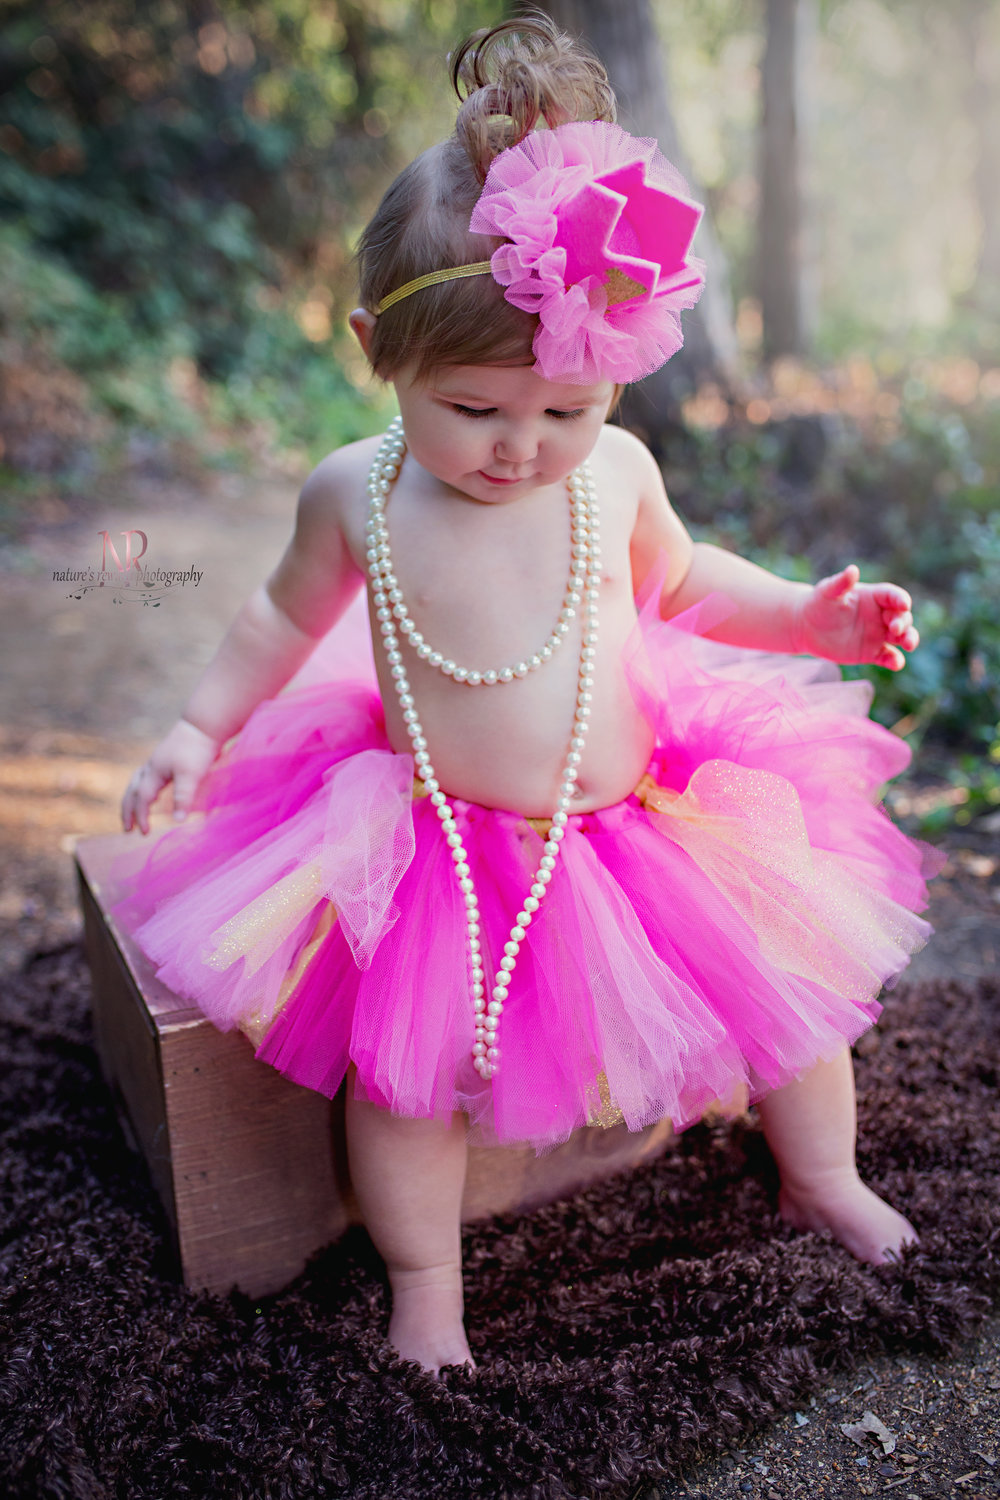 Pretty in her pink tutu and pearls